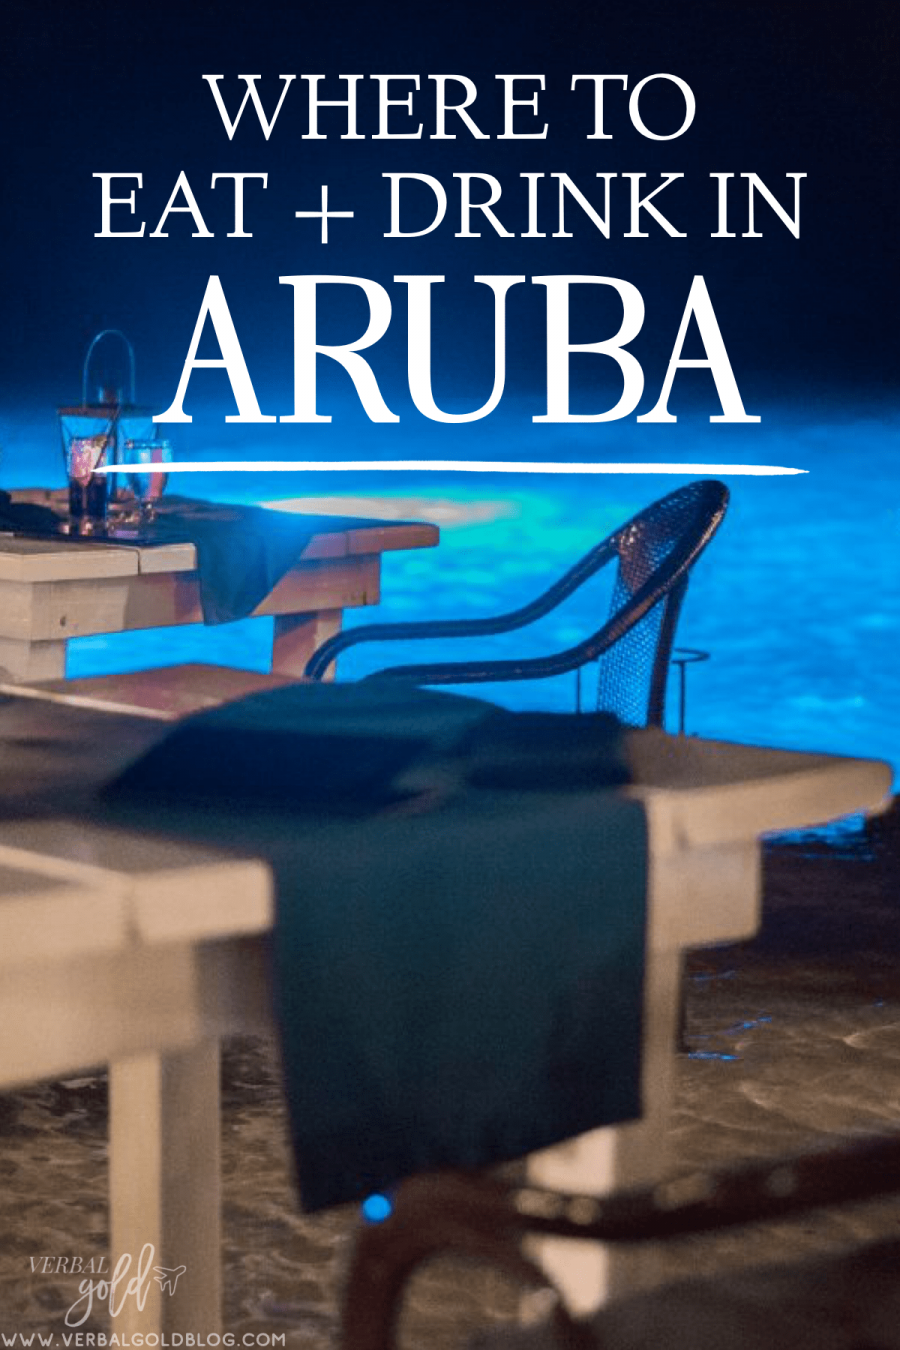 In this travel guide to Aruba, I share the top places to eat and drink in Aruba